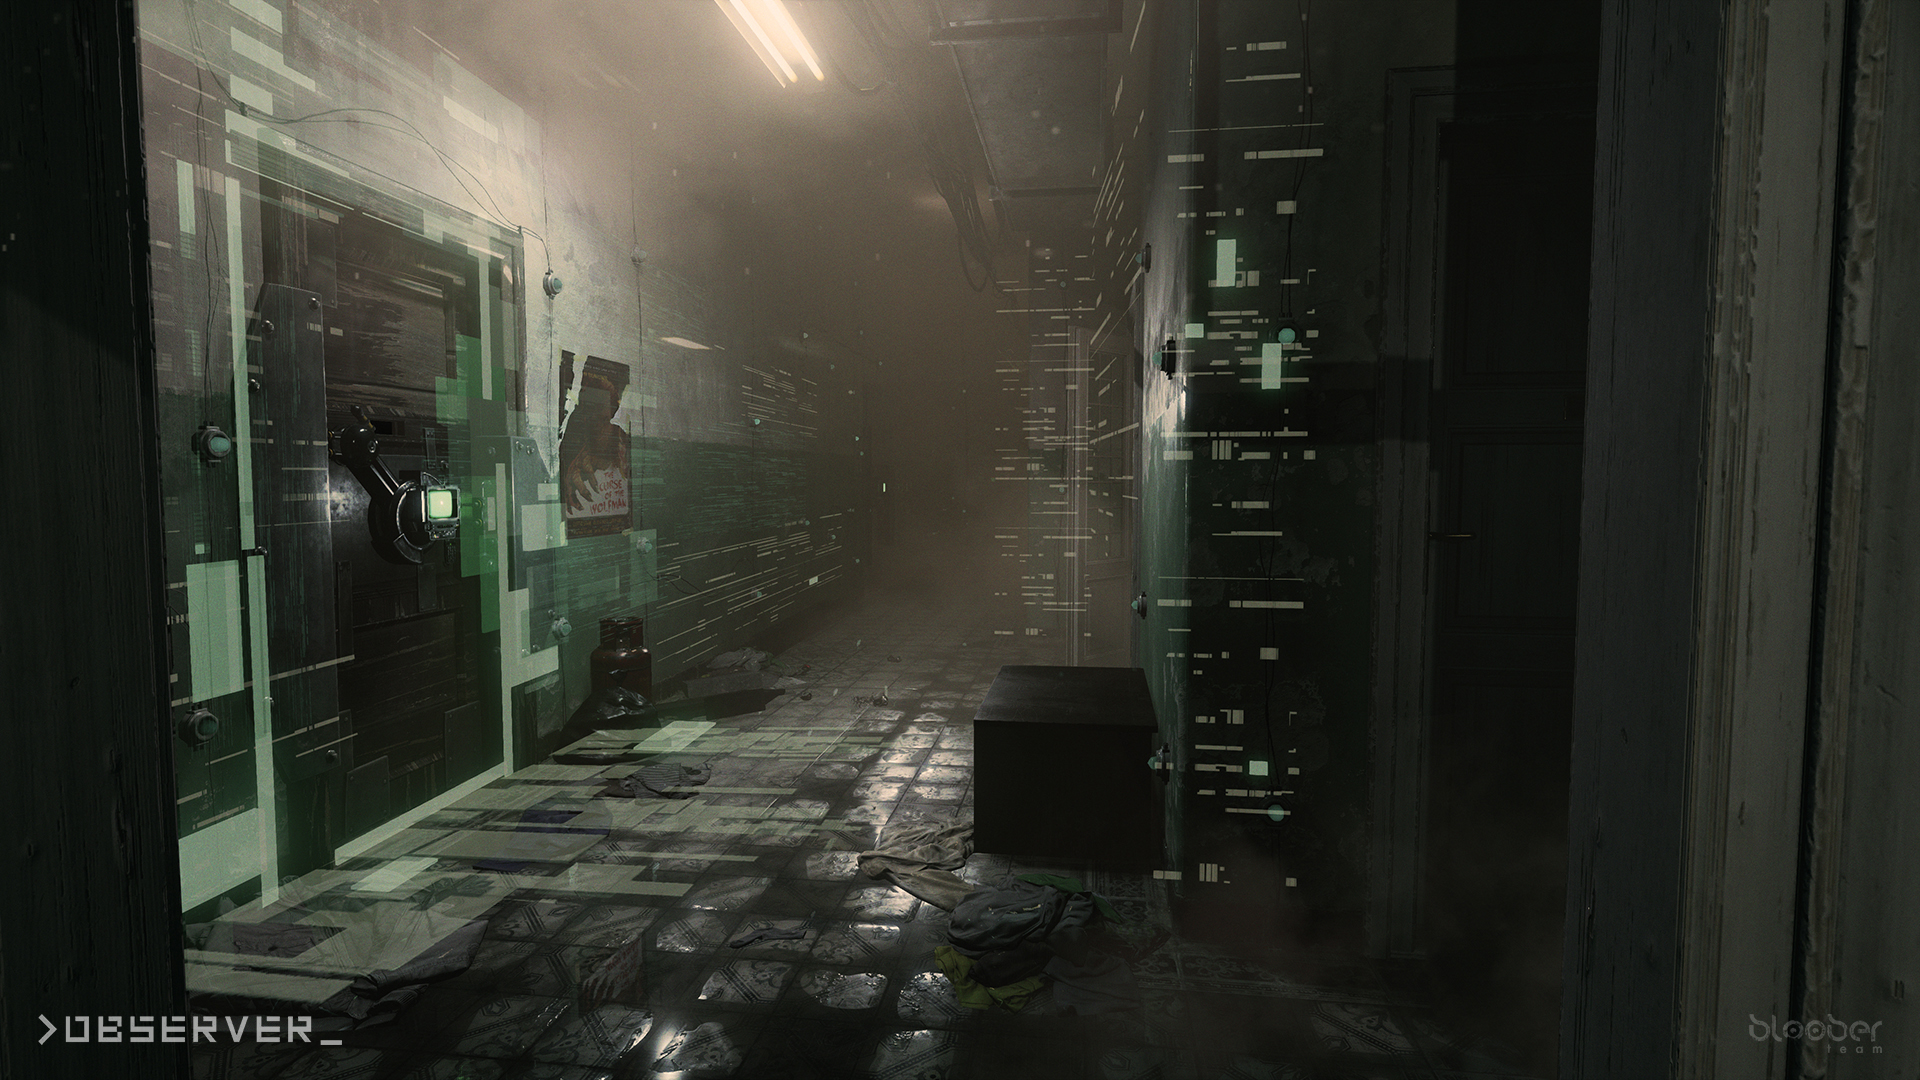 observer_hall_holo.png